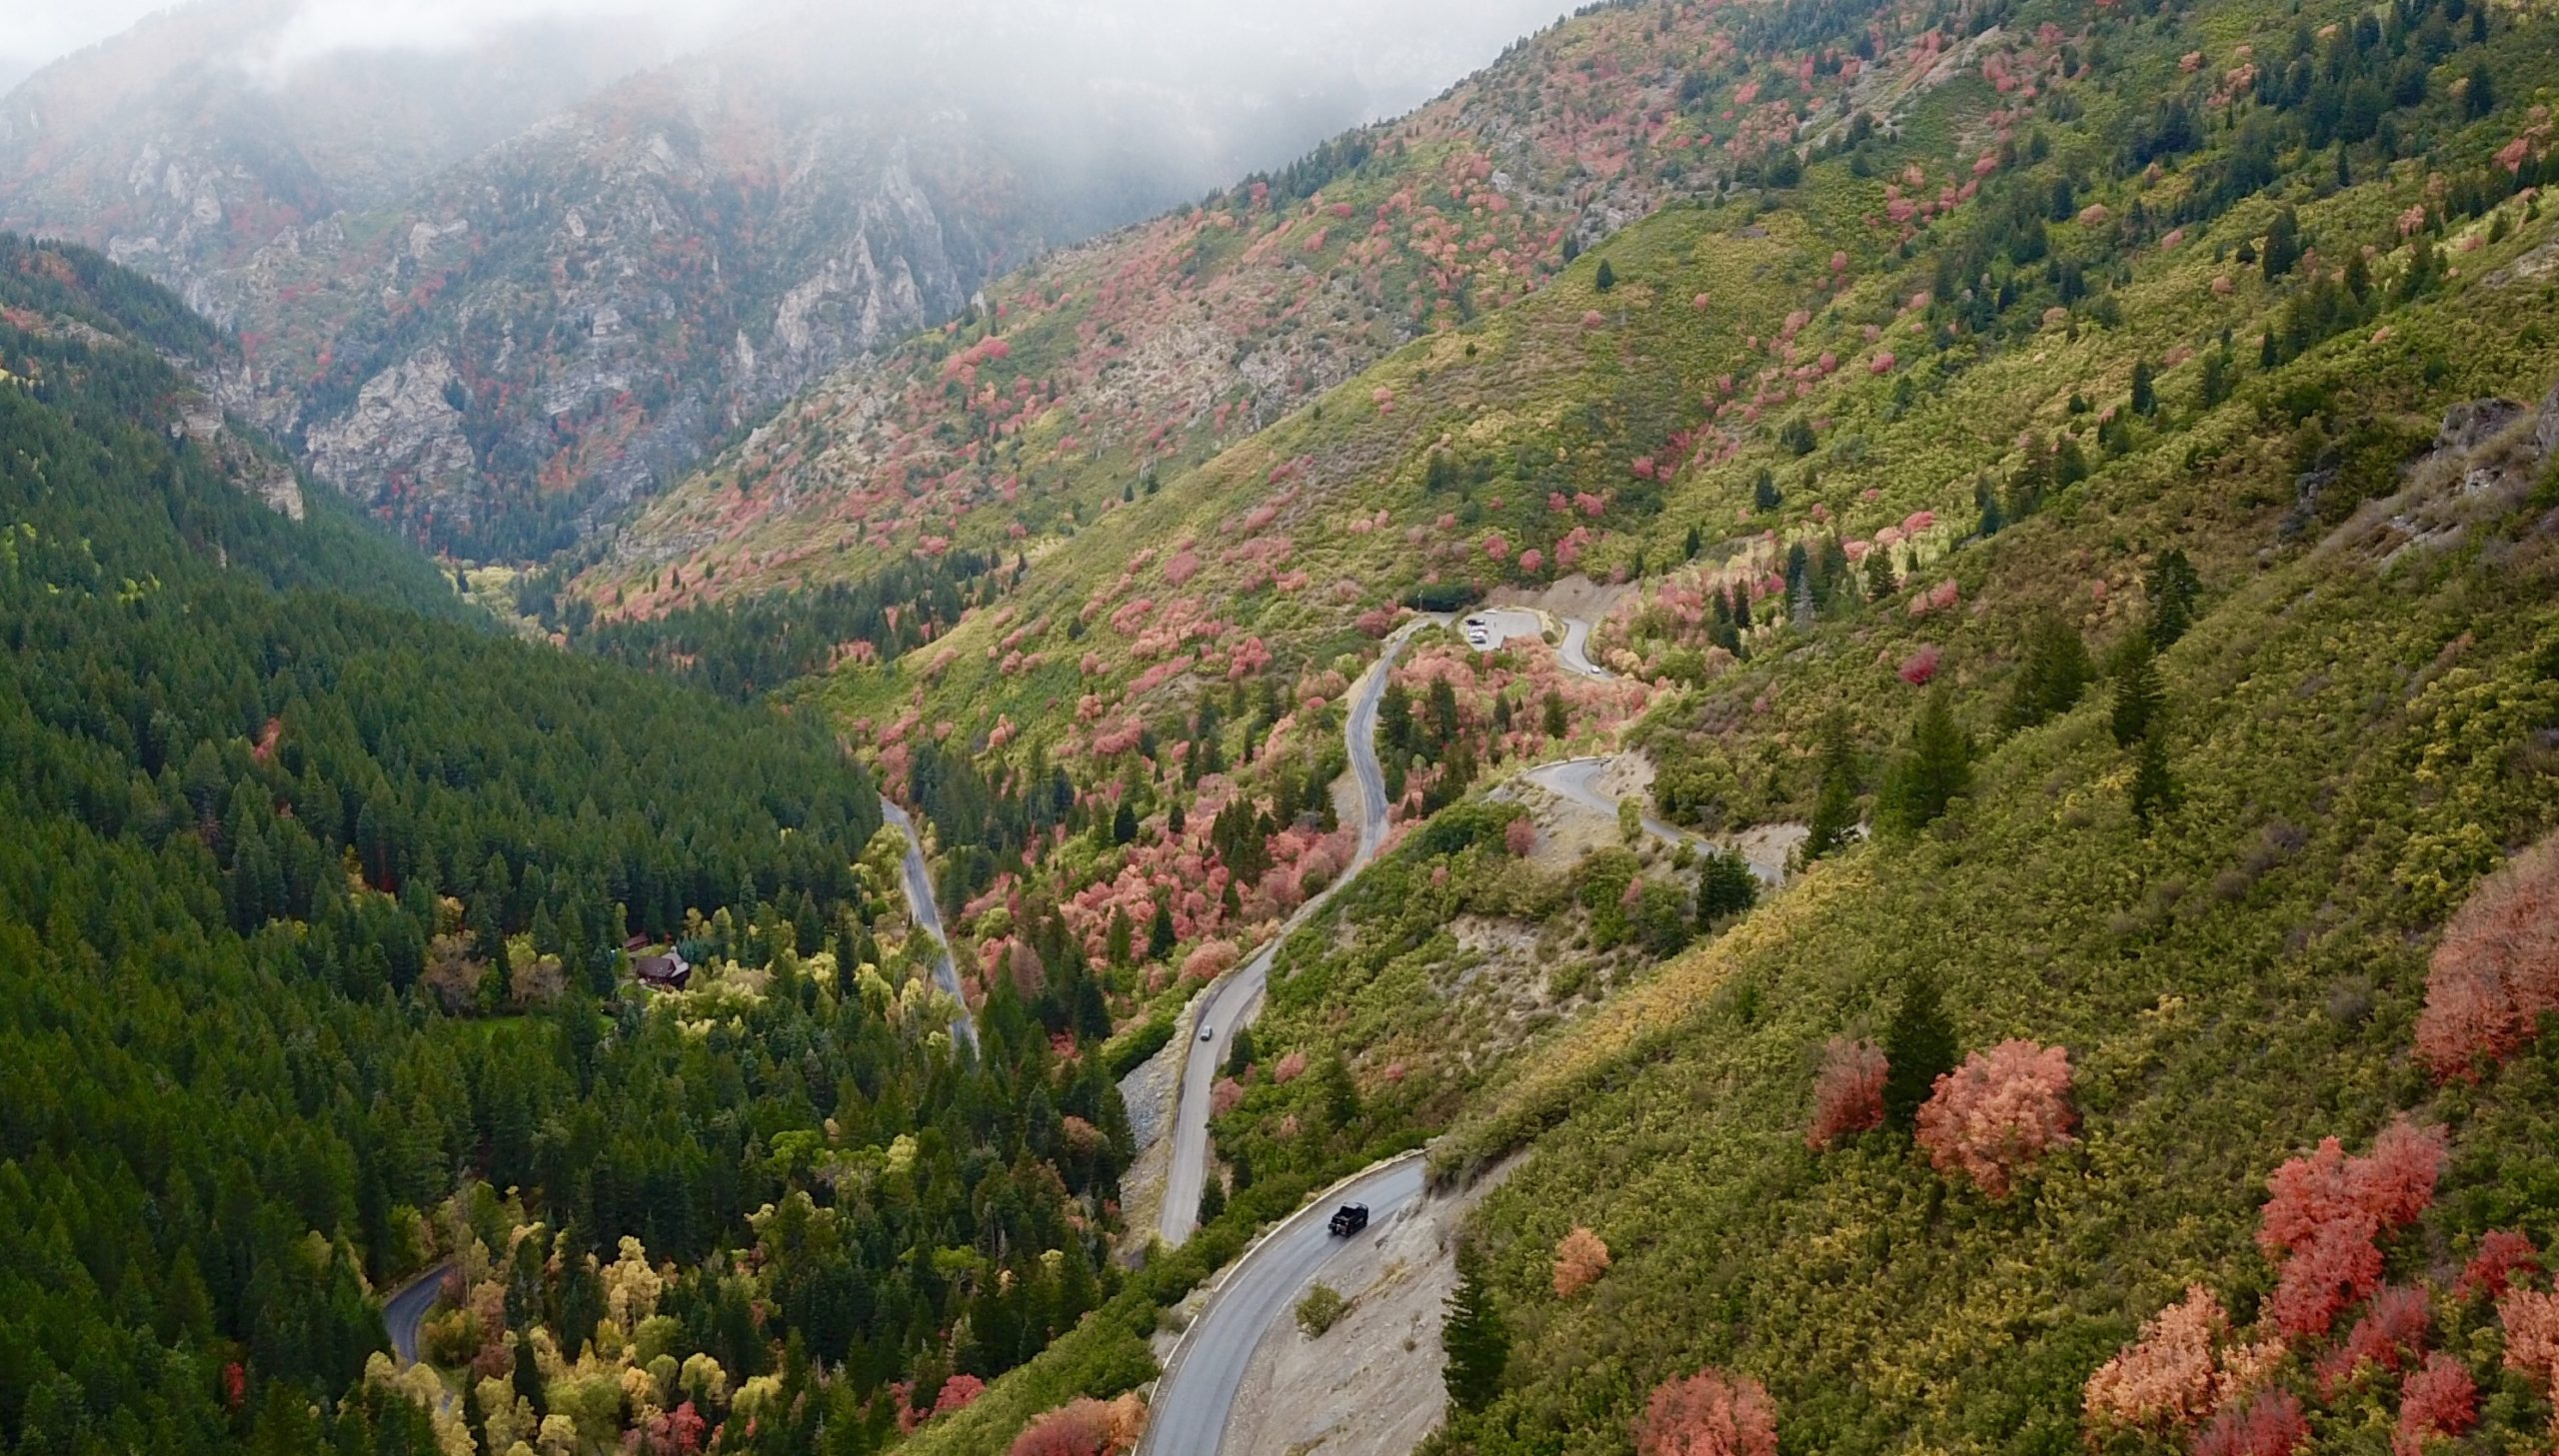 Hop In Your Car And Take The Alpine Loop For An Incredible 20-Mile Scenic Drive In Utah